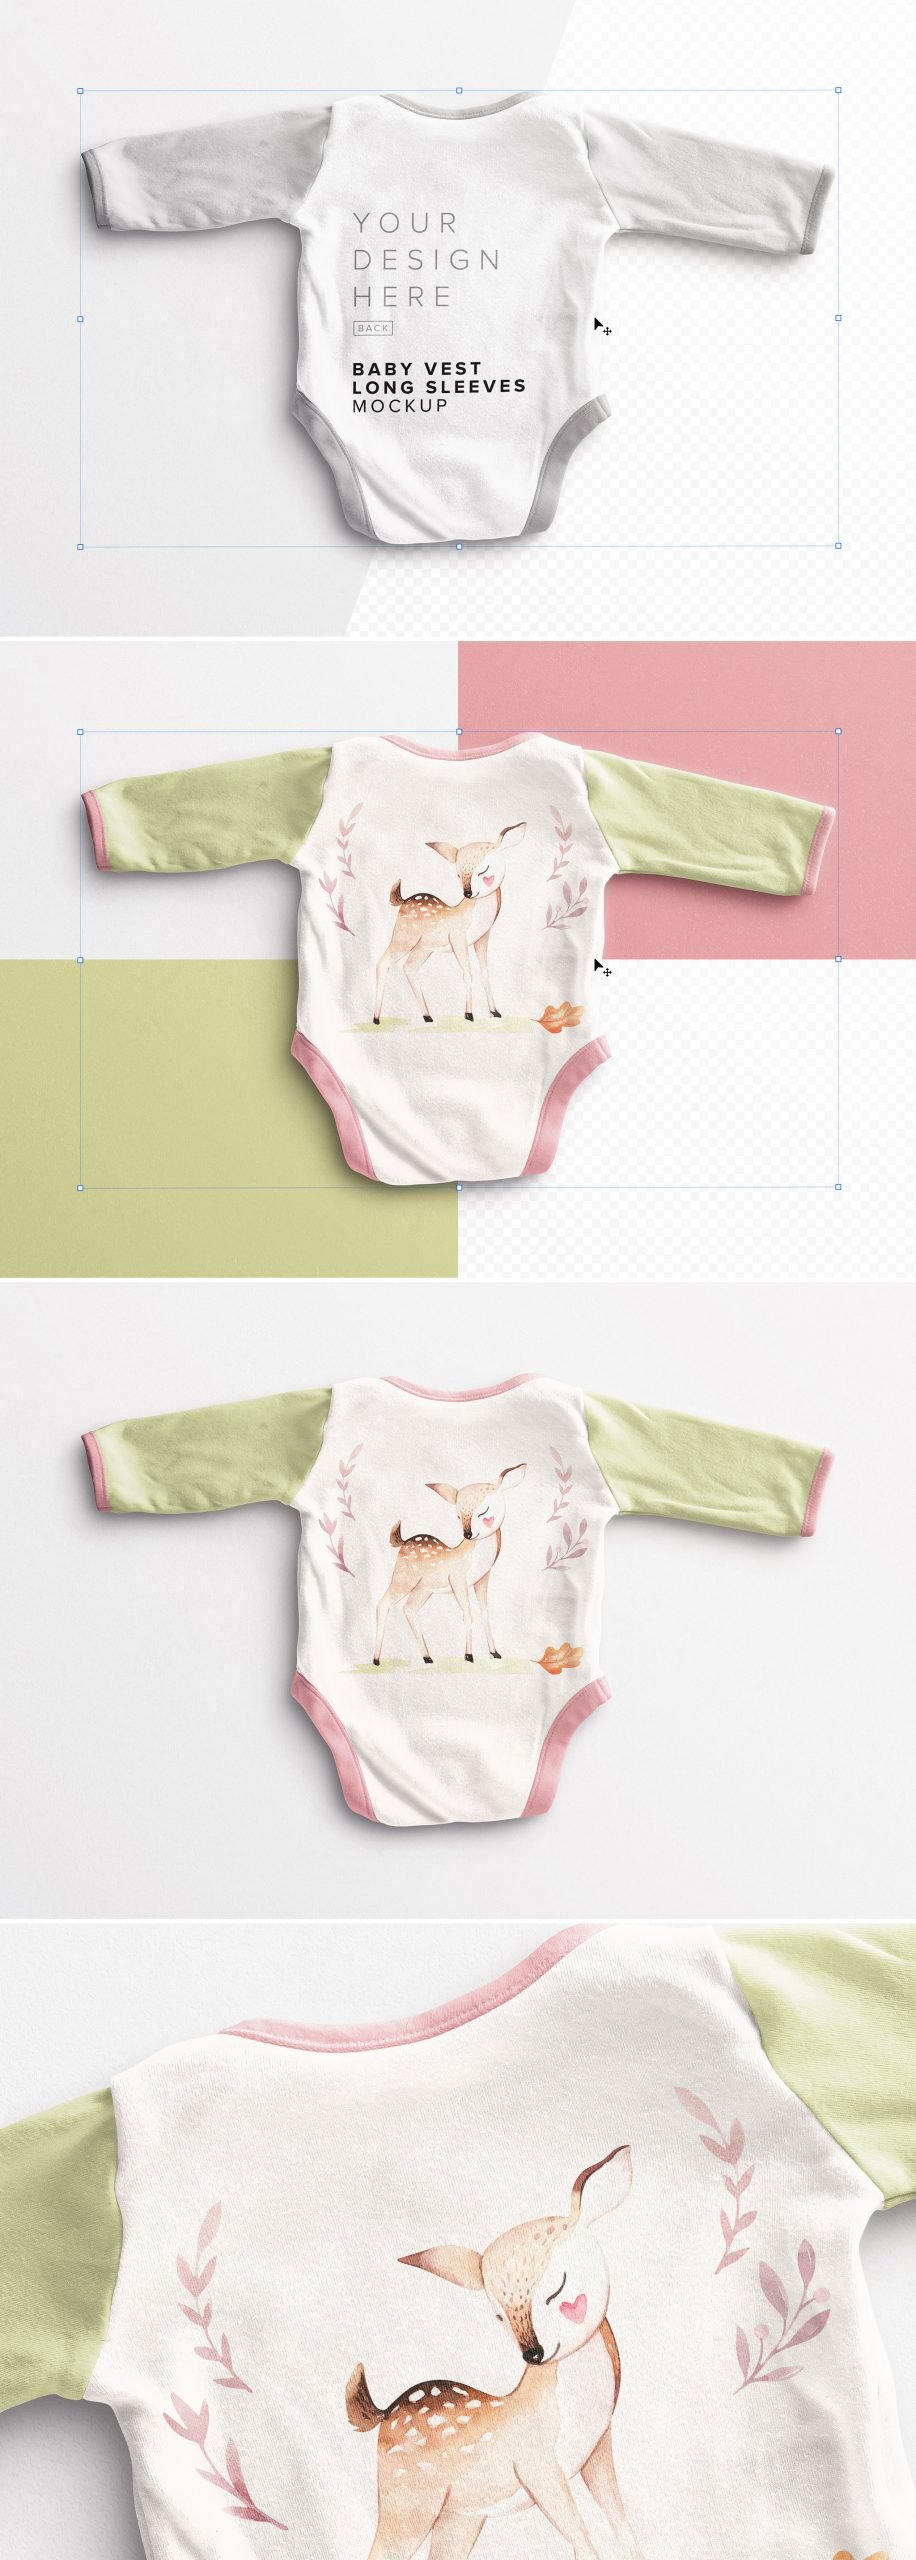 Baby Vest Long Sleeves Back Mockup Preview scaled